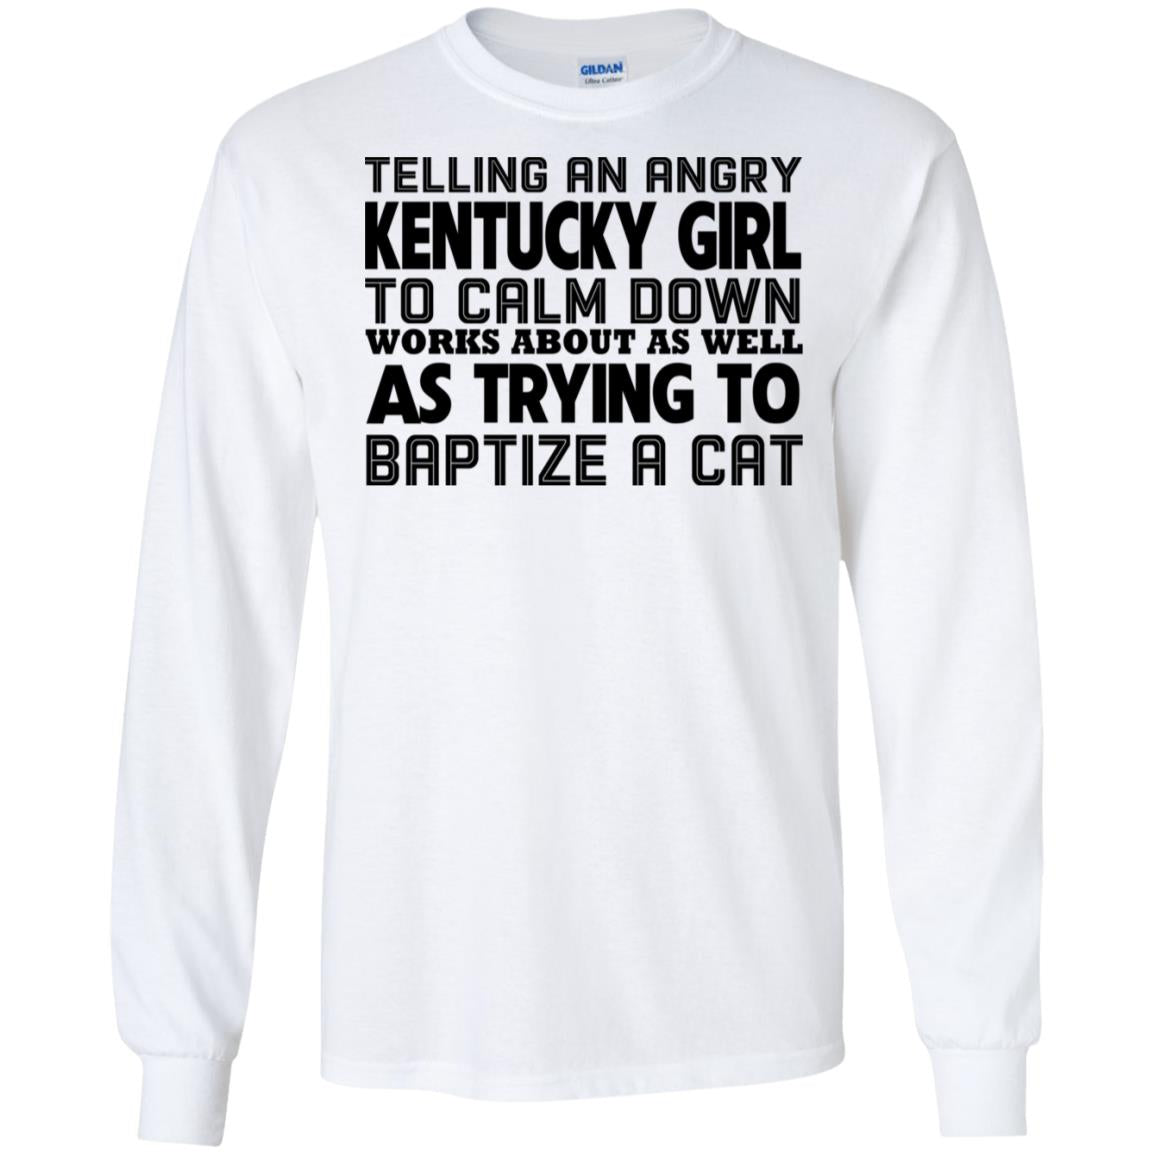 Telling an angry Kentucky girl to calm down